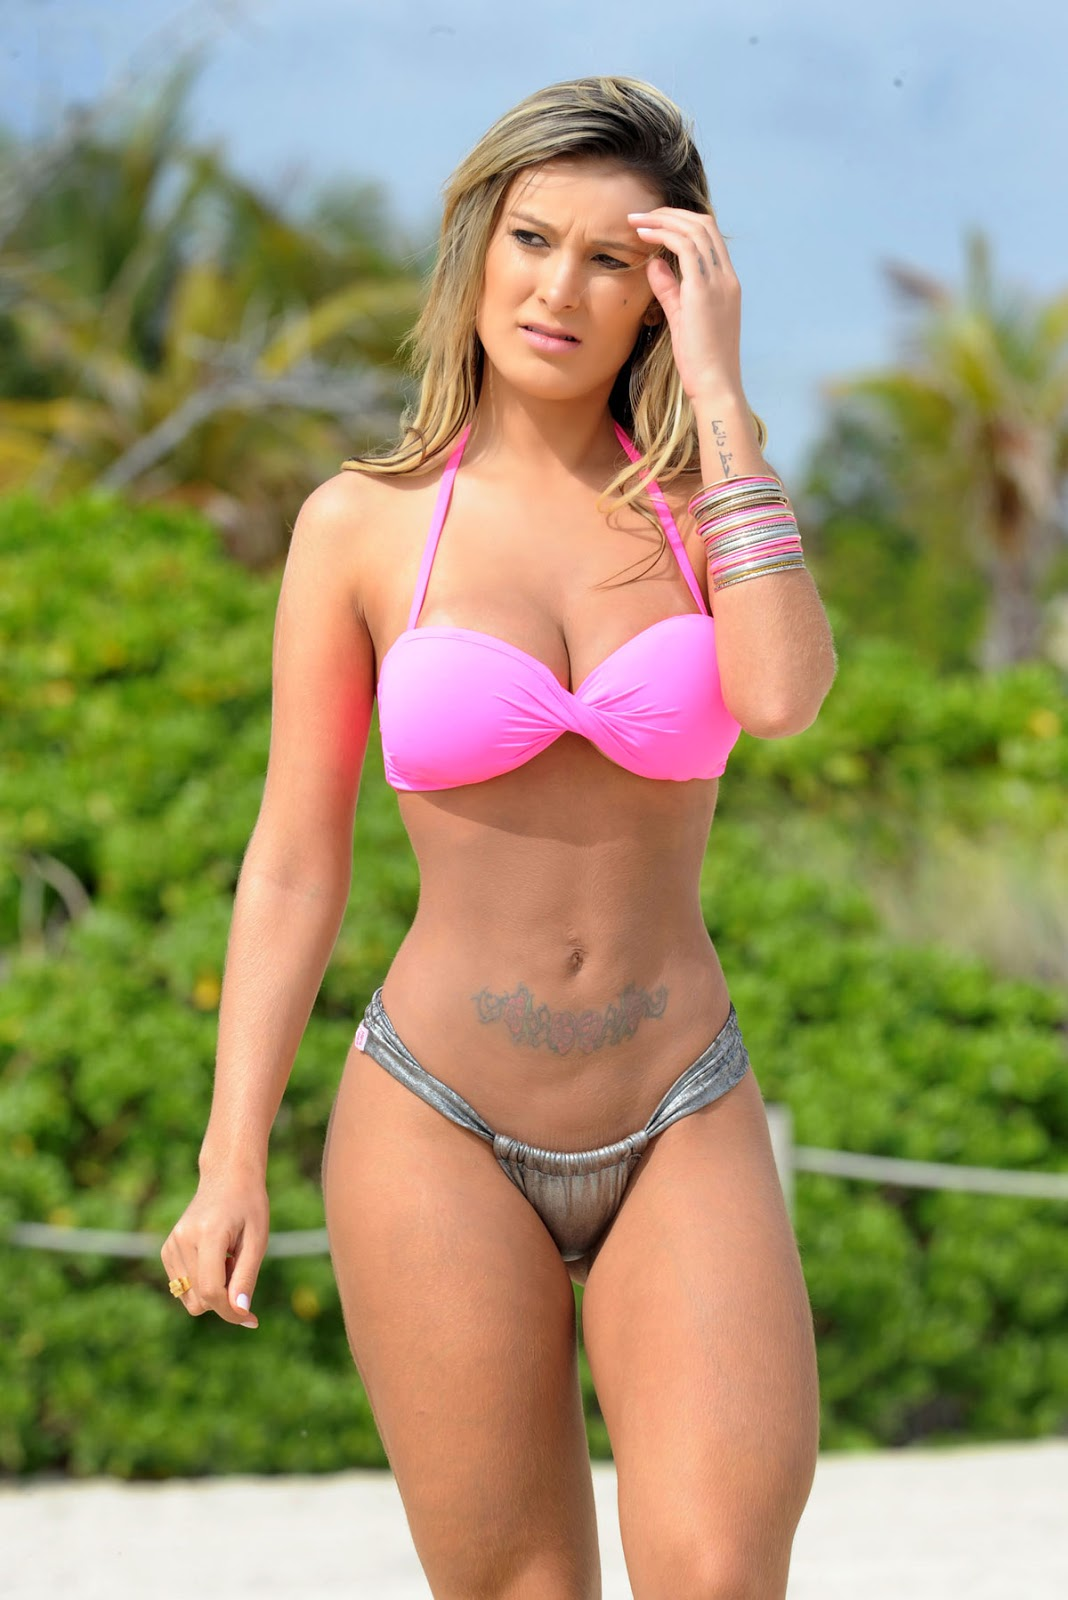 Andressa Urach In Bikini On The Beach Miami